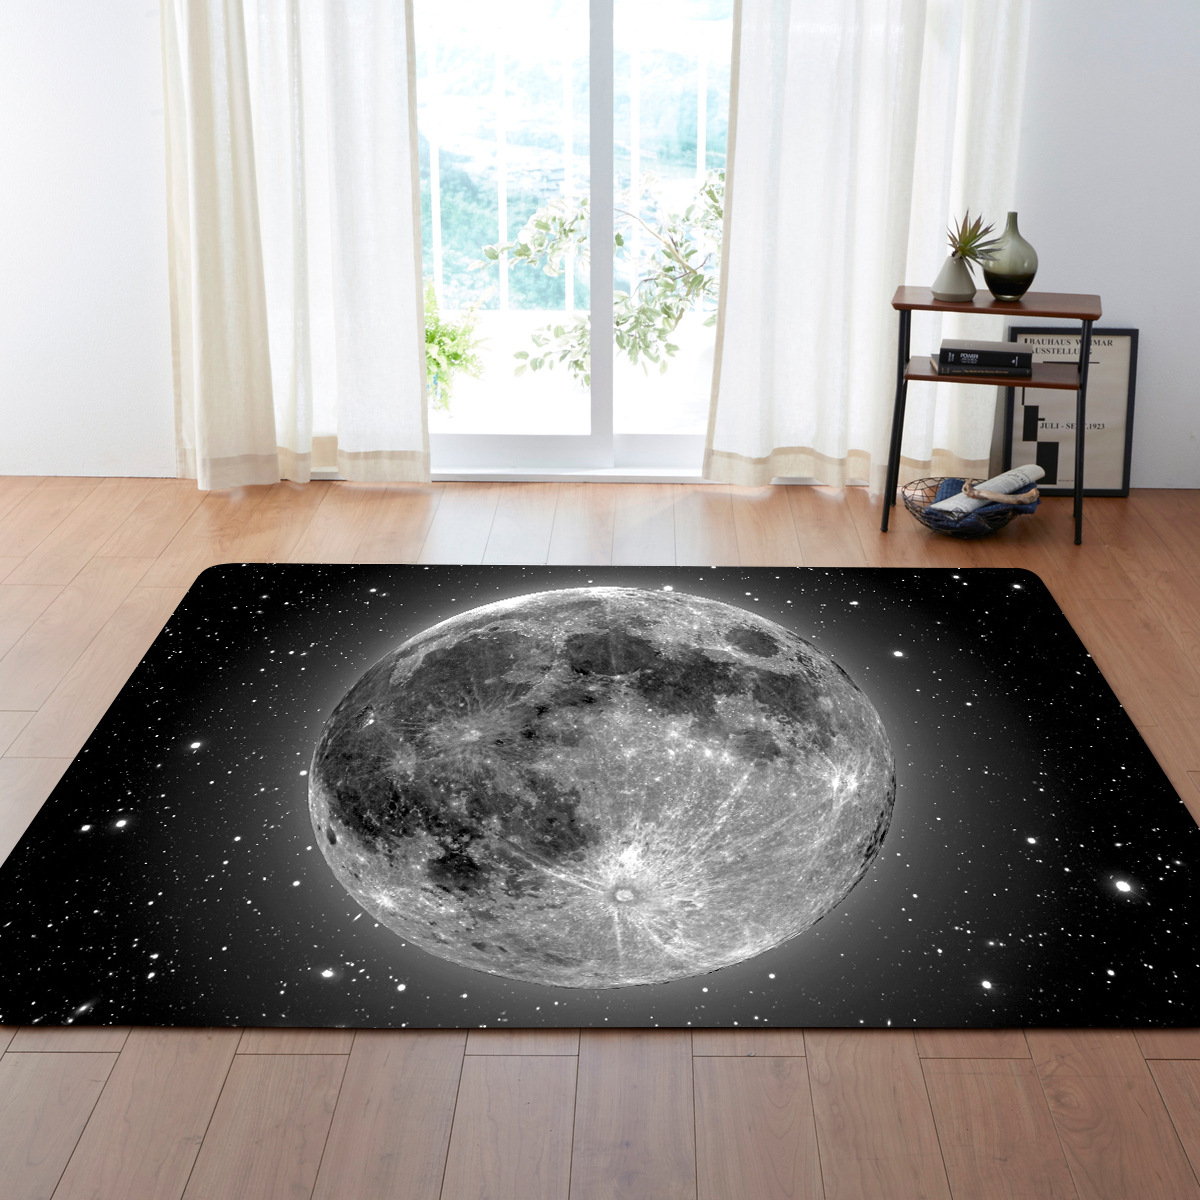 Universe Planets 3D Carpets For Living Room Bedroom Area Rugs Boys/girl Room Decor Carpet Baby Play Crawling Anti-slip Mat/Rug